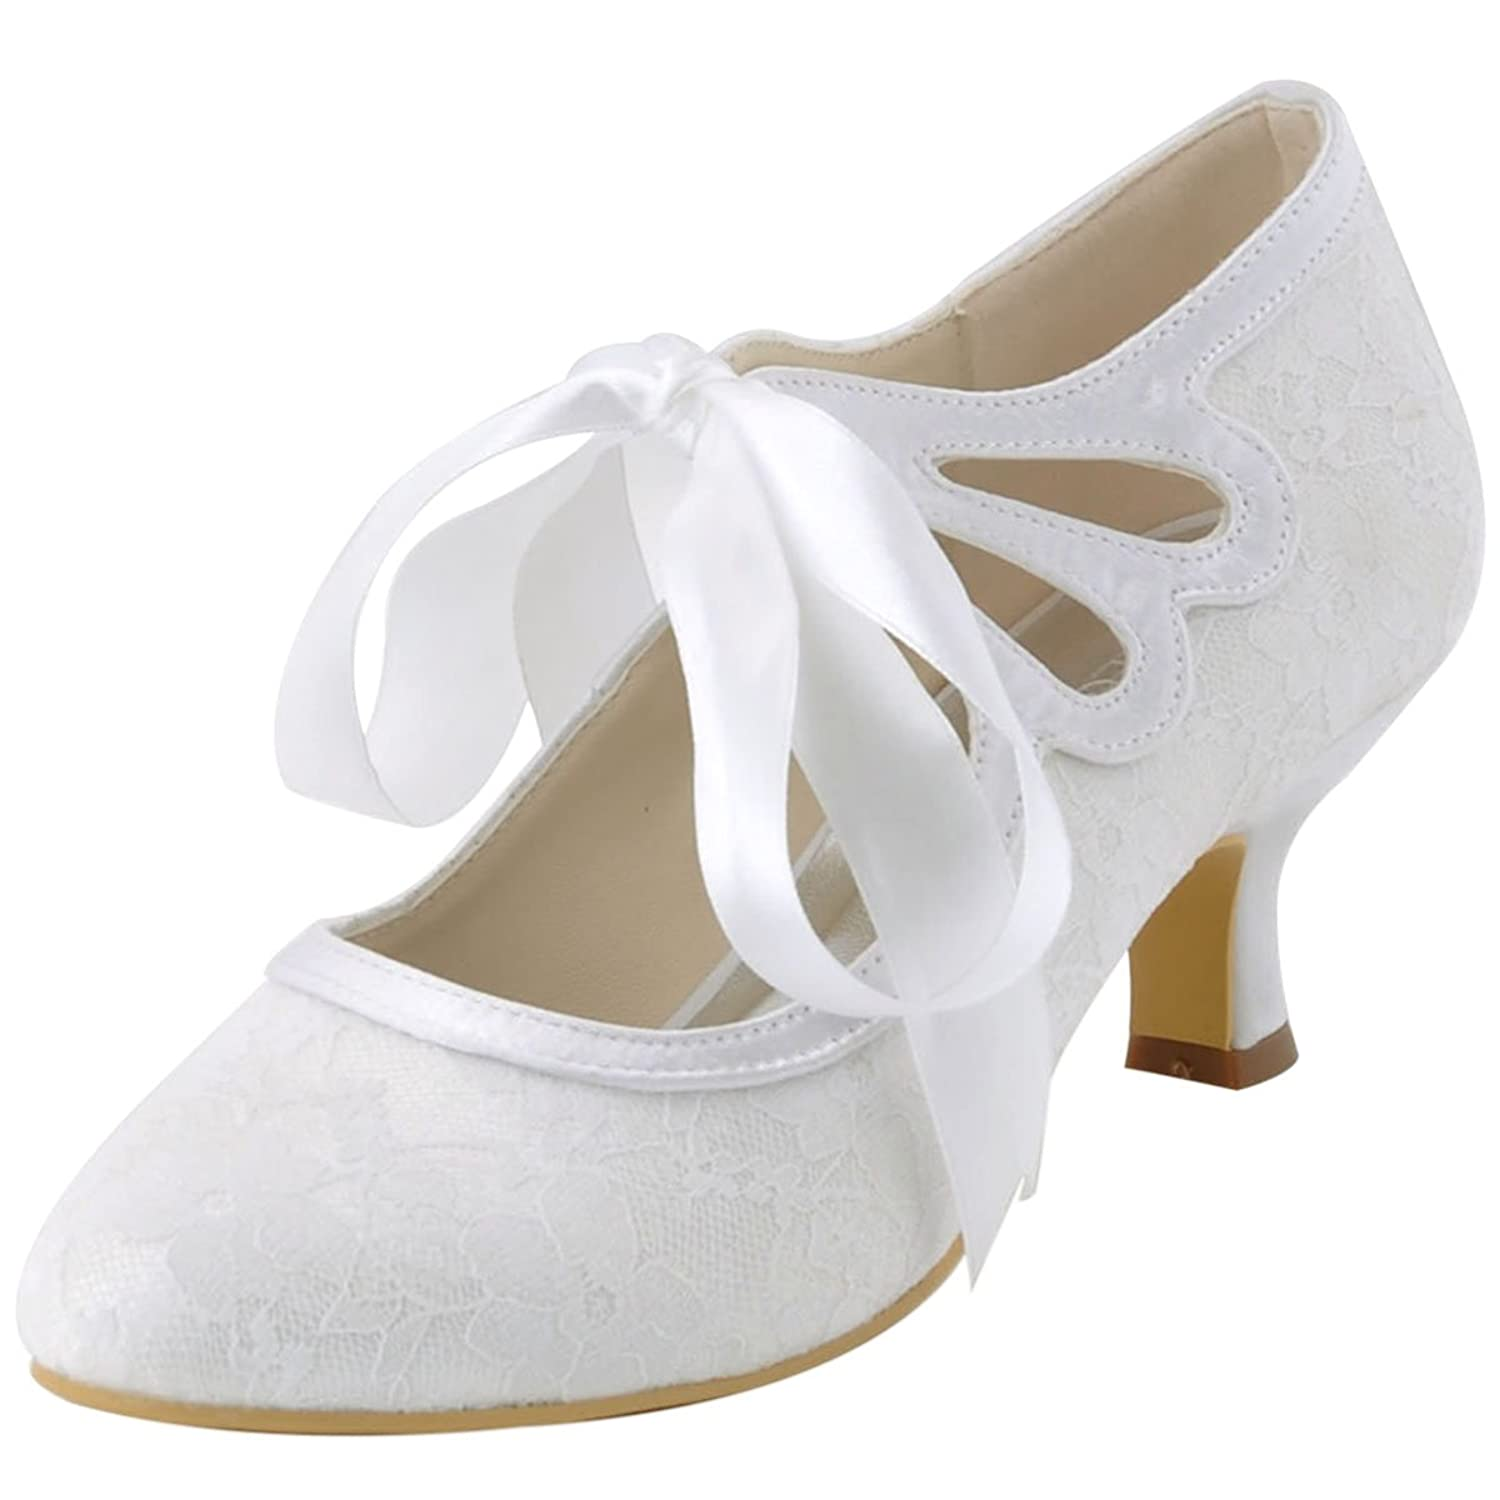 Vintage Wedding Shoes, Flats, Boots, Heels ElegantPark HC1521 Womens Mary  Jane Closed Toe